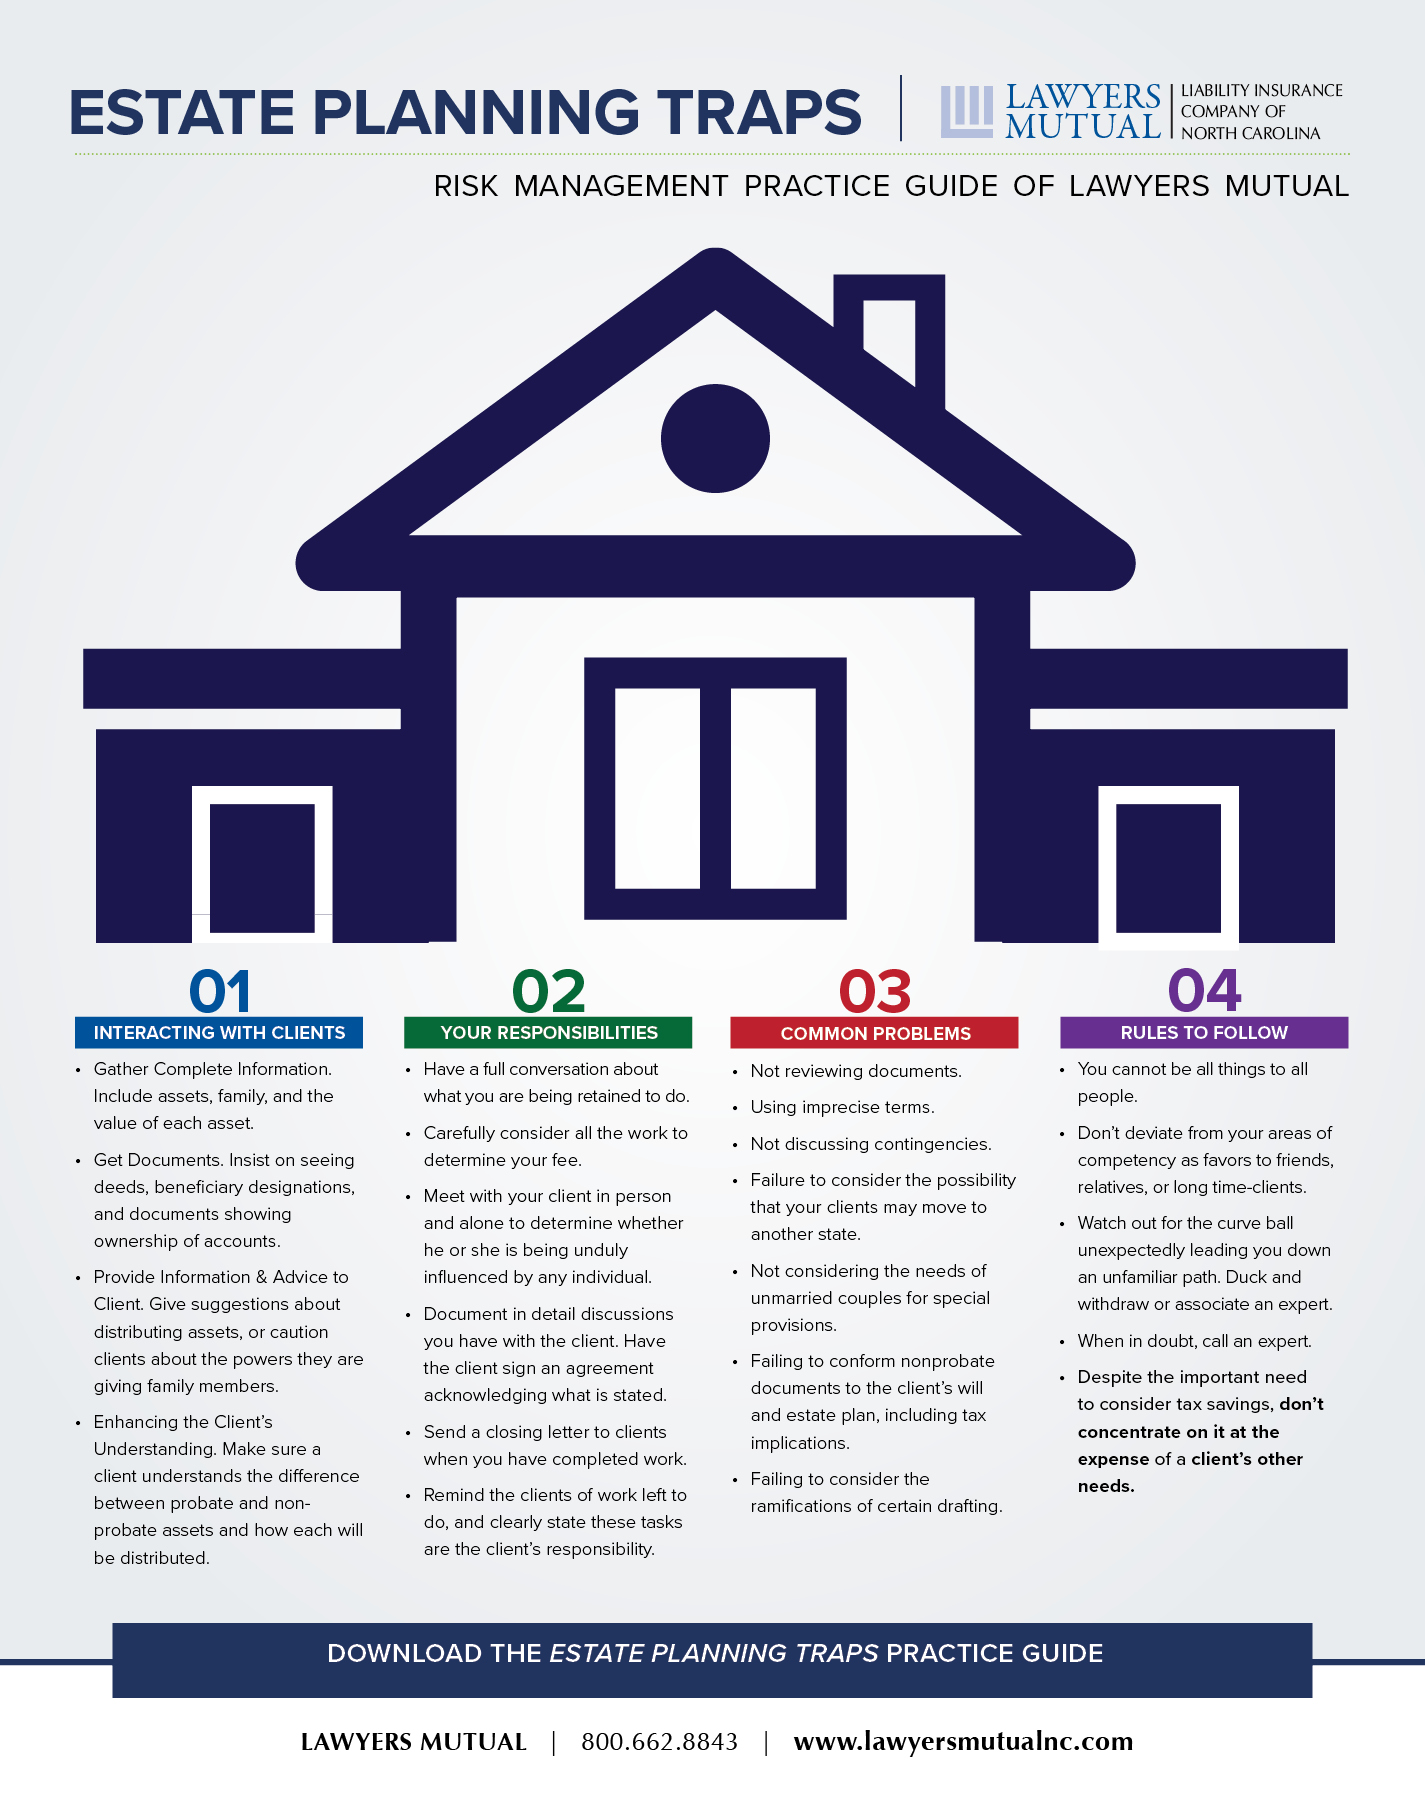 infographic for estate planning traps practice guide